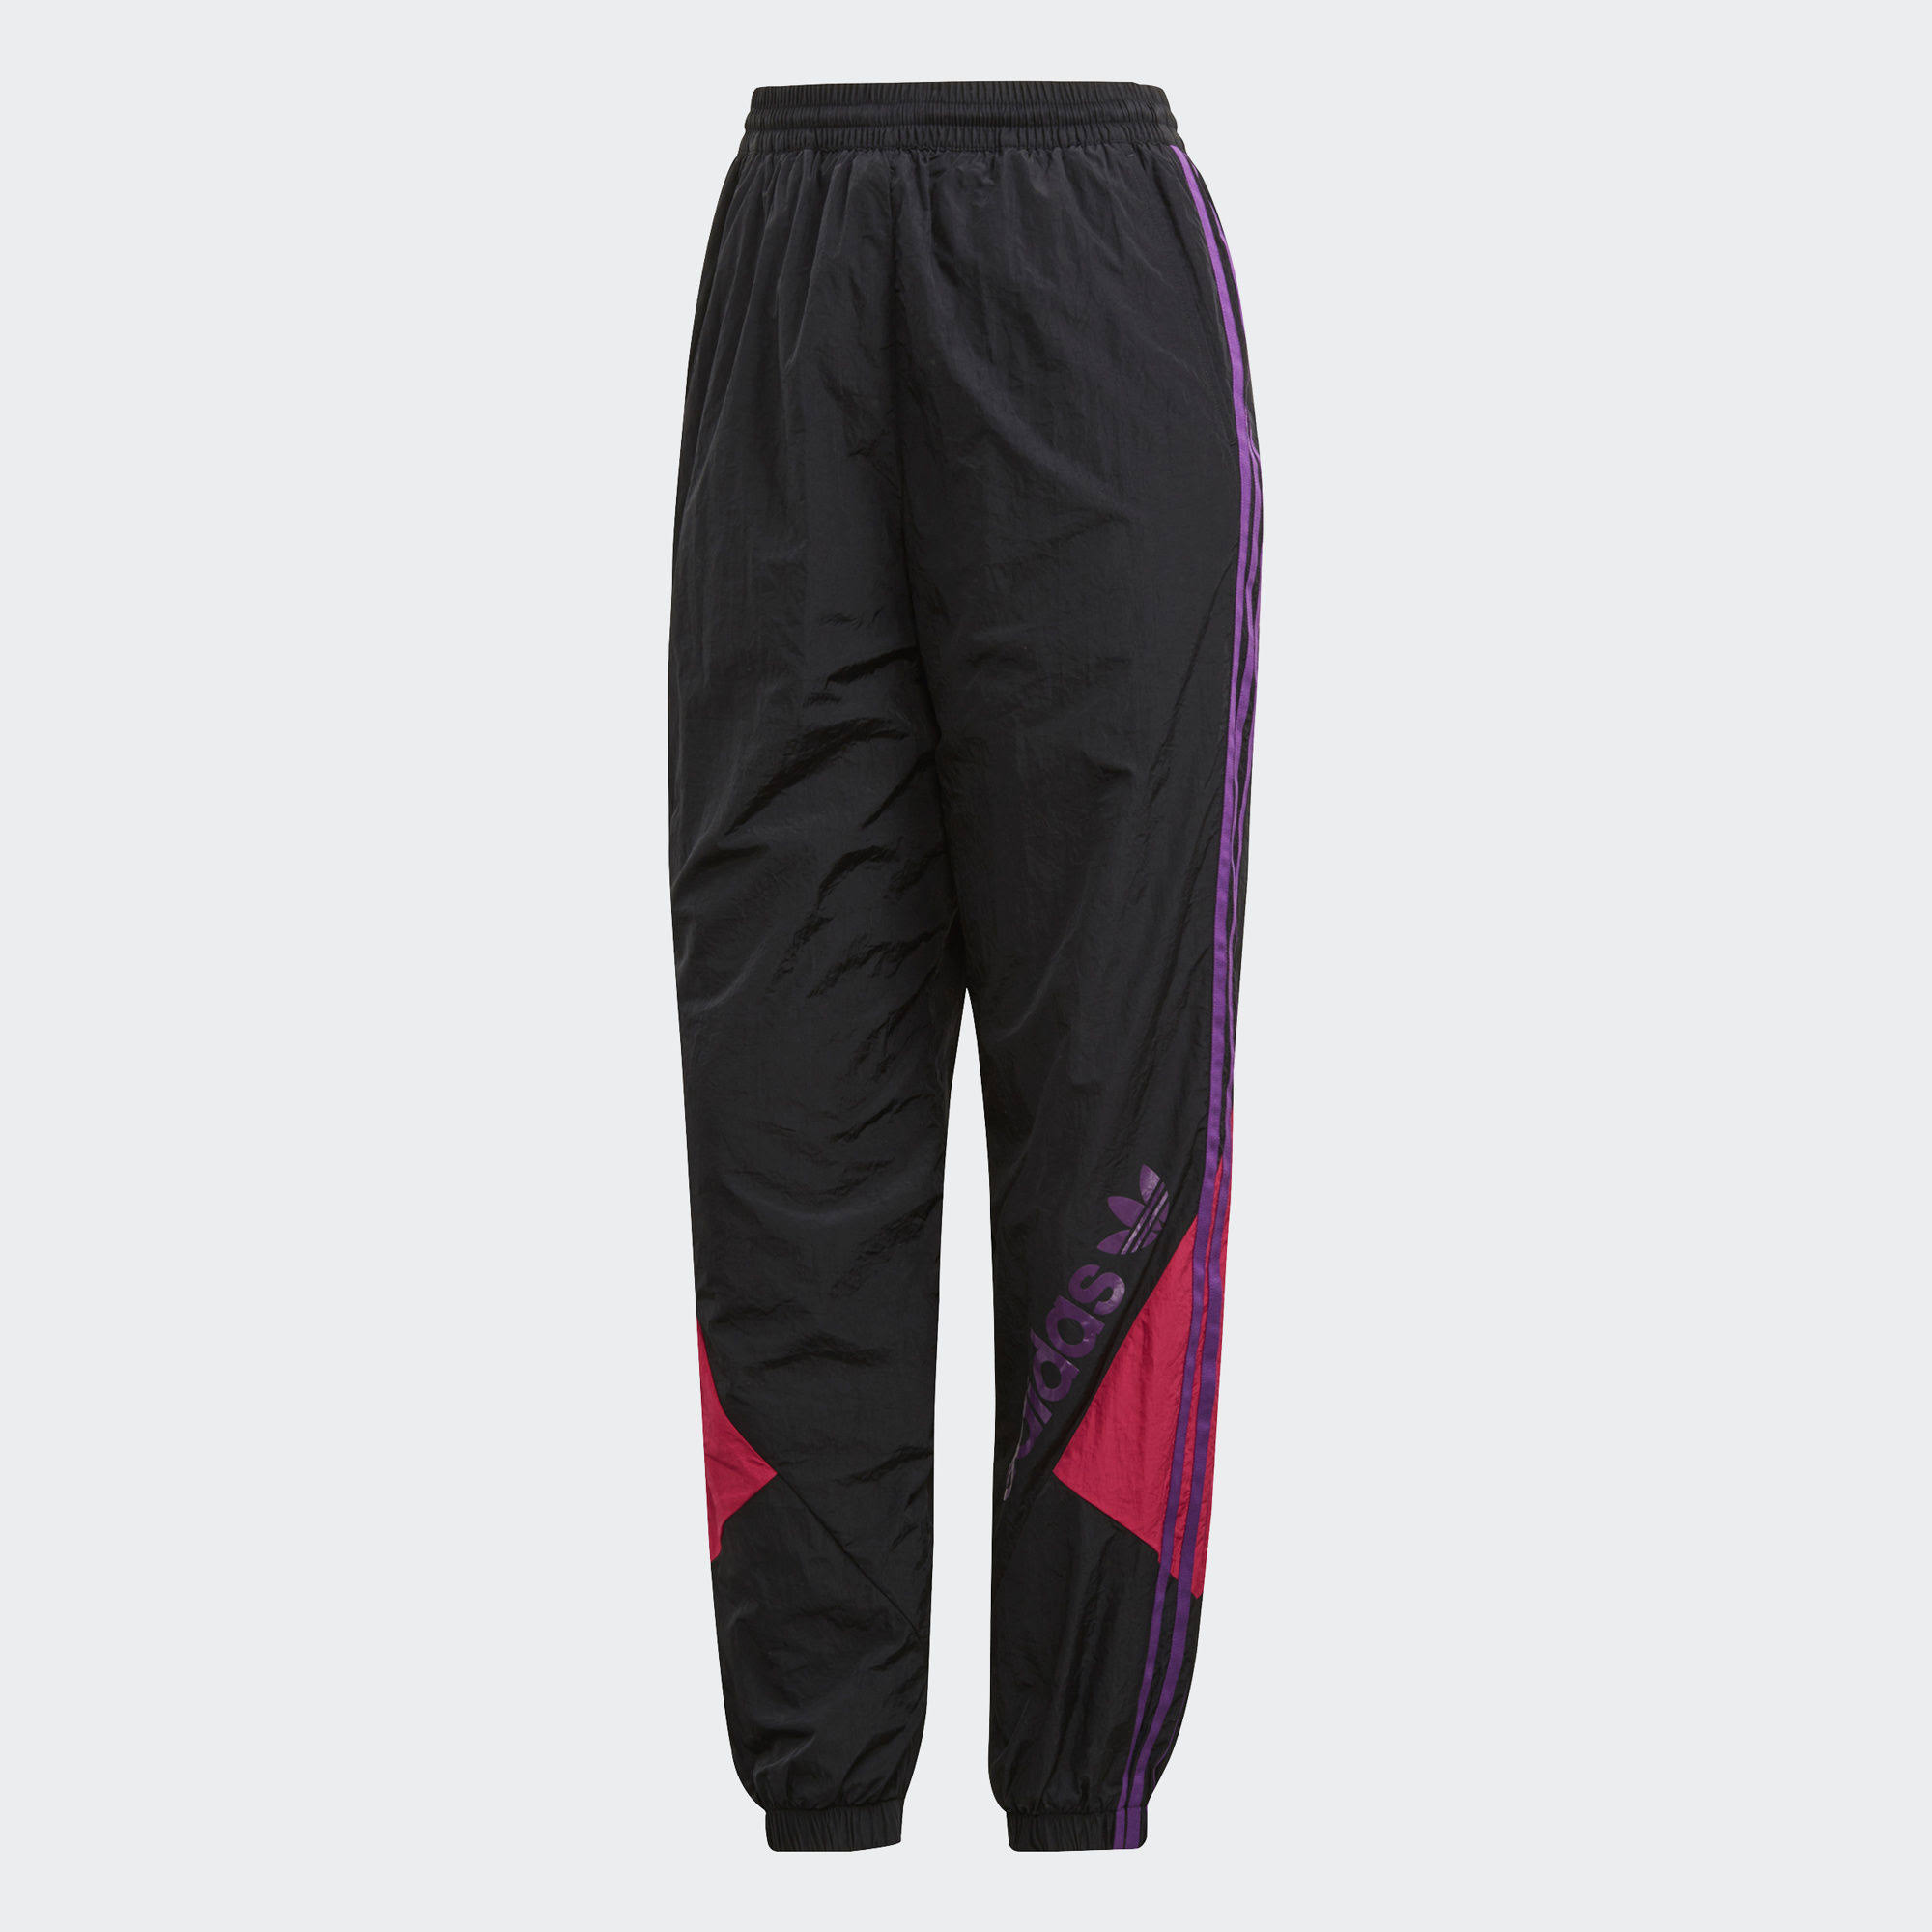 Pantalone 90s S Originals ColorblockedNero Adidas wPk0On